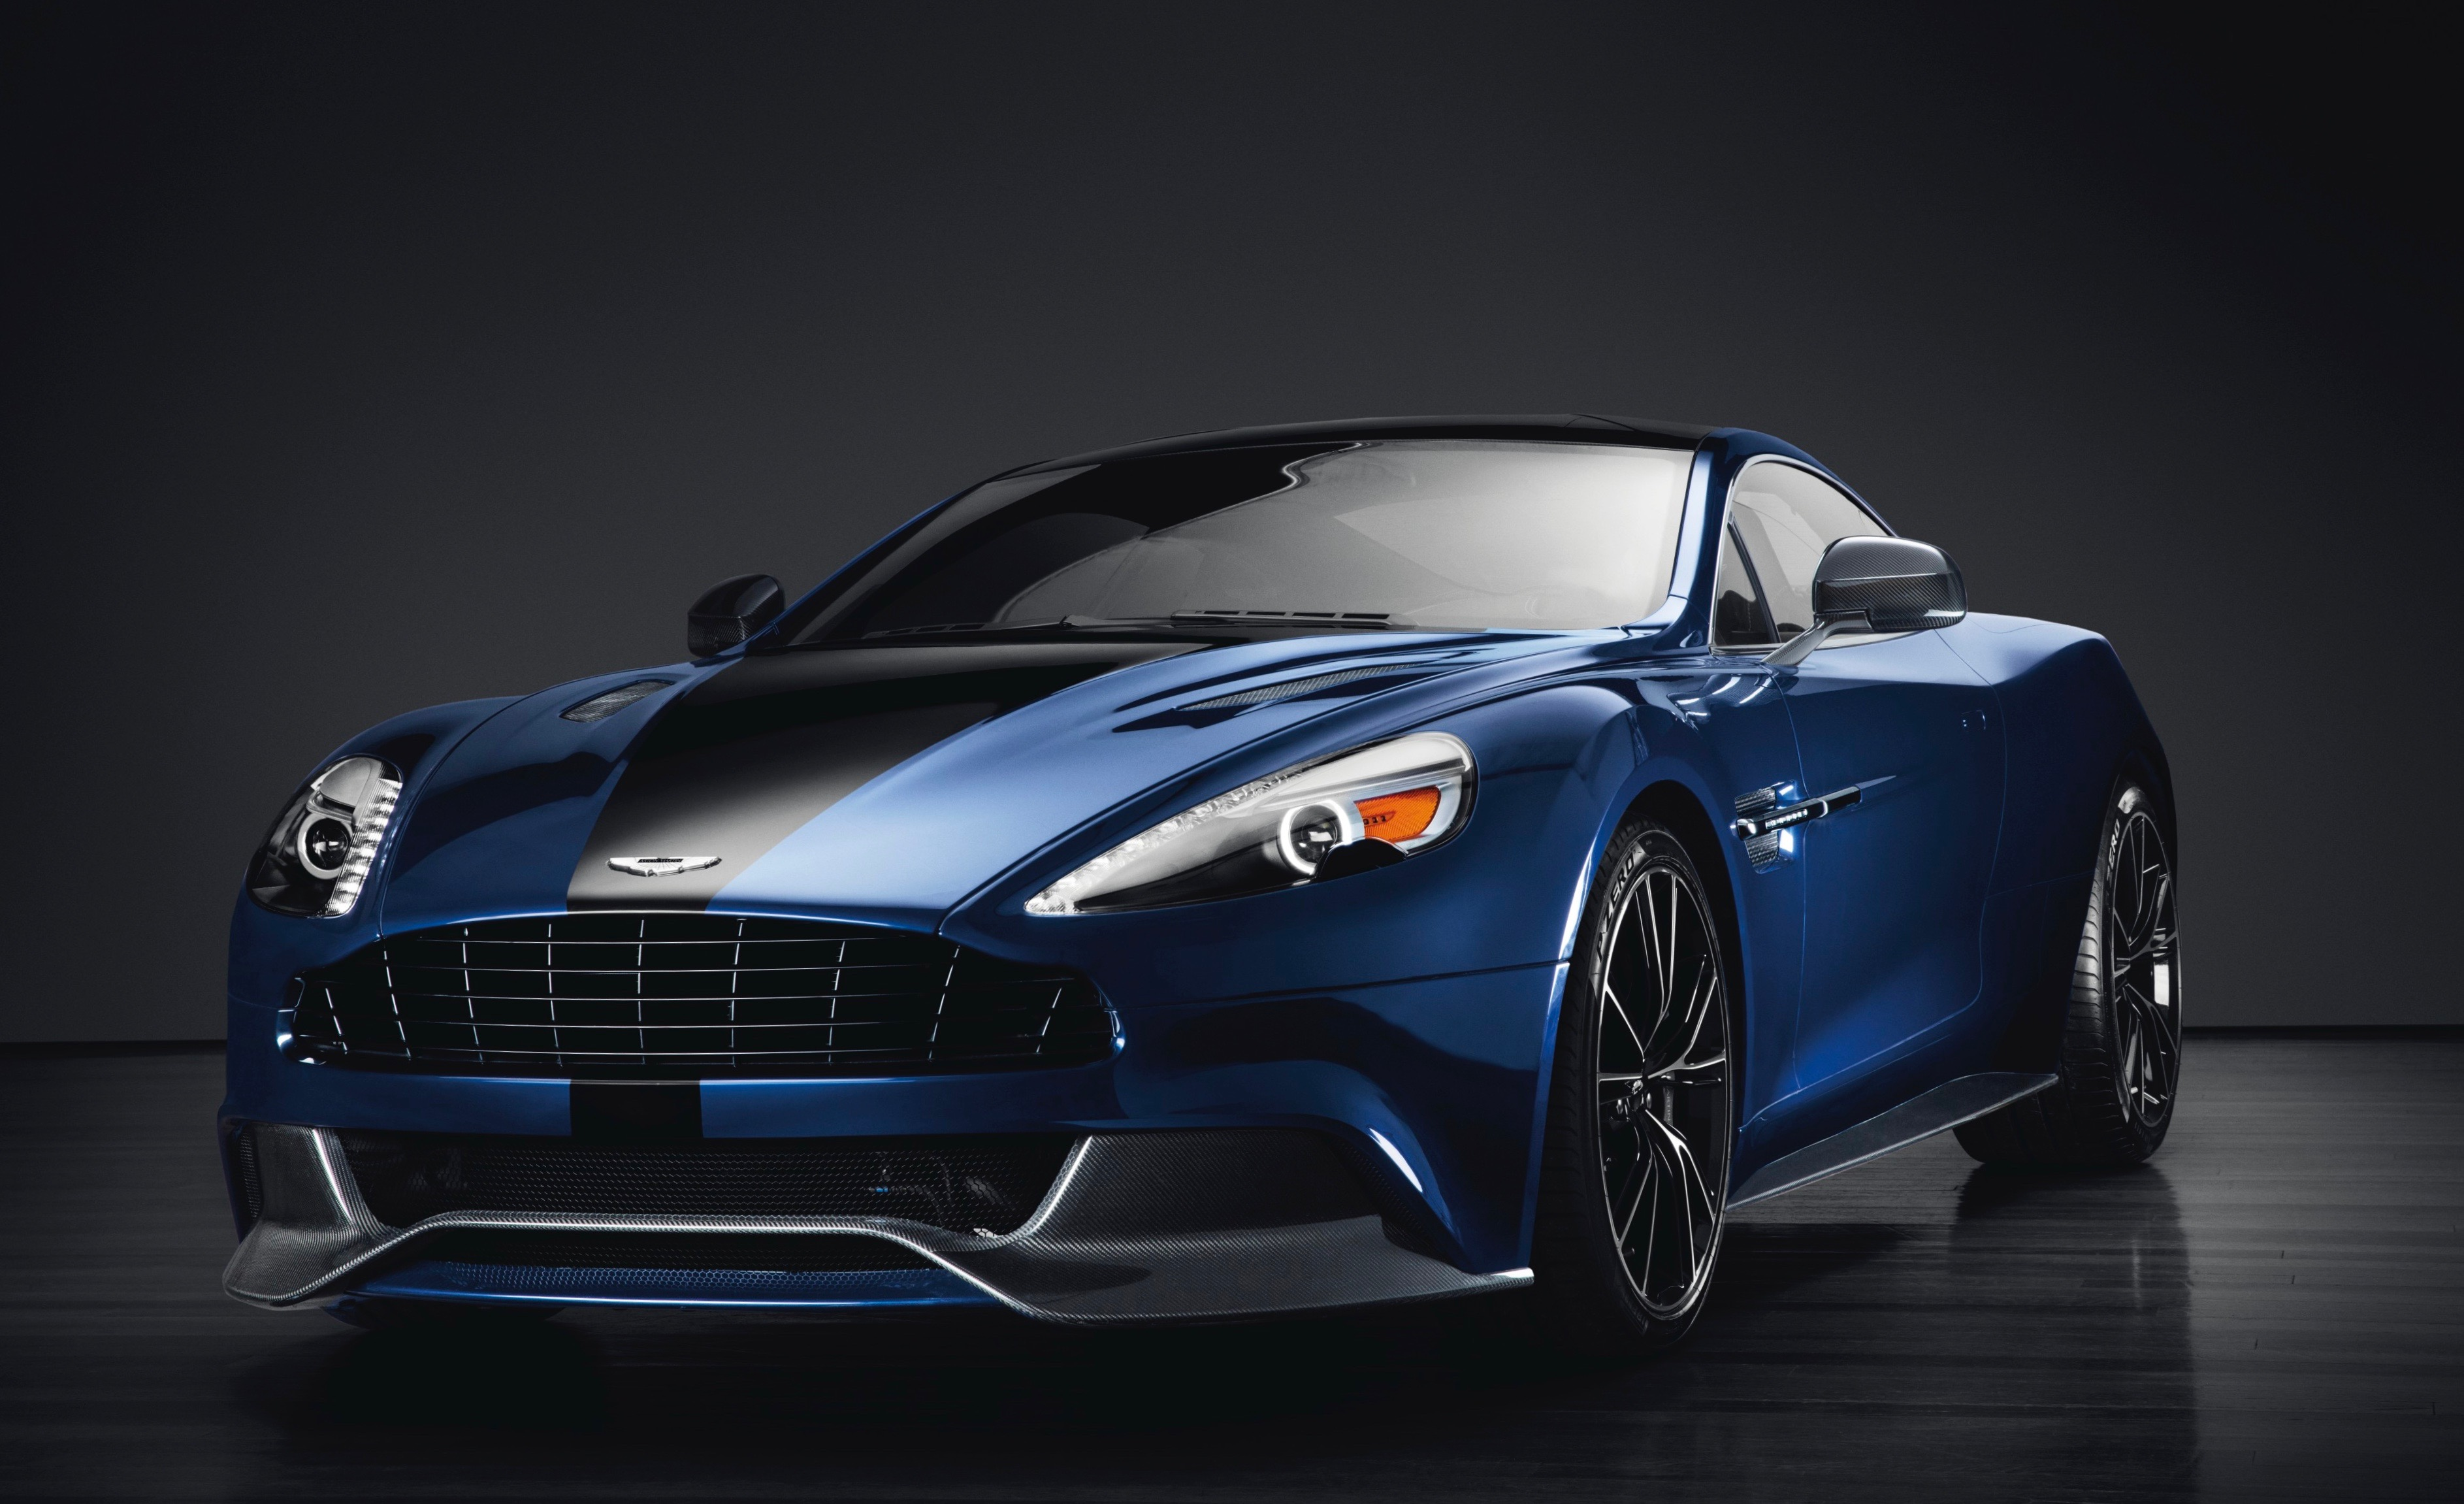 S Aston Martin To Be Sold For Charity ClassicCarscom Journal - Aston martin dealer miami